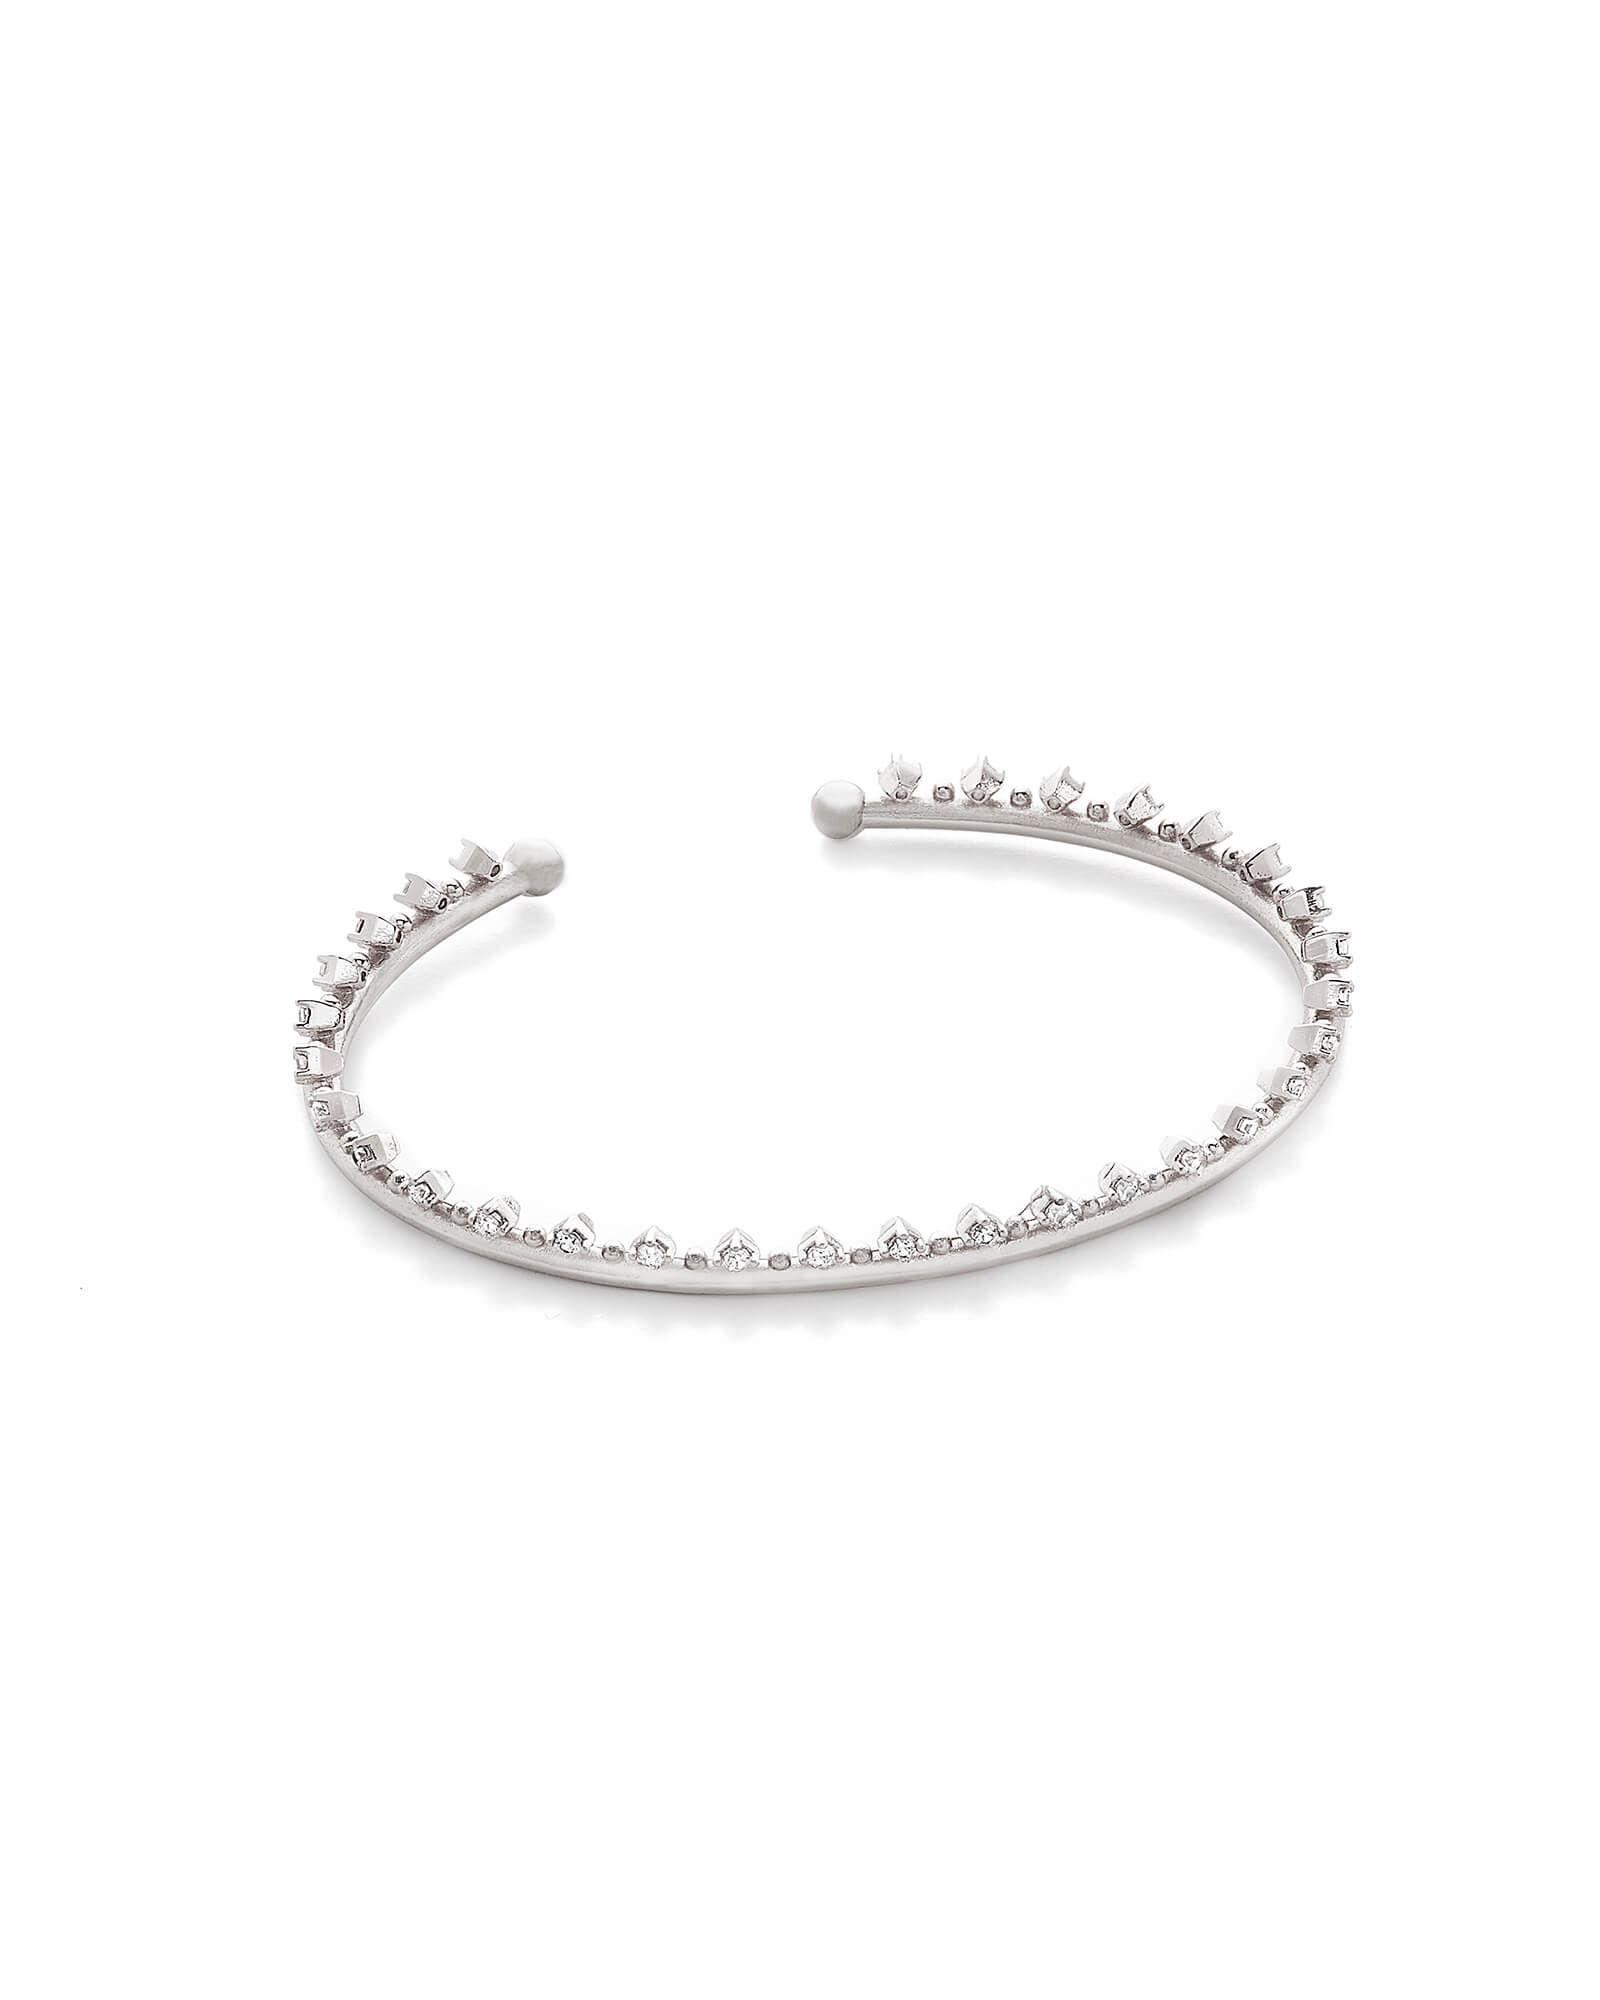 Codi Pinch Bracelet in Silver